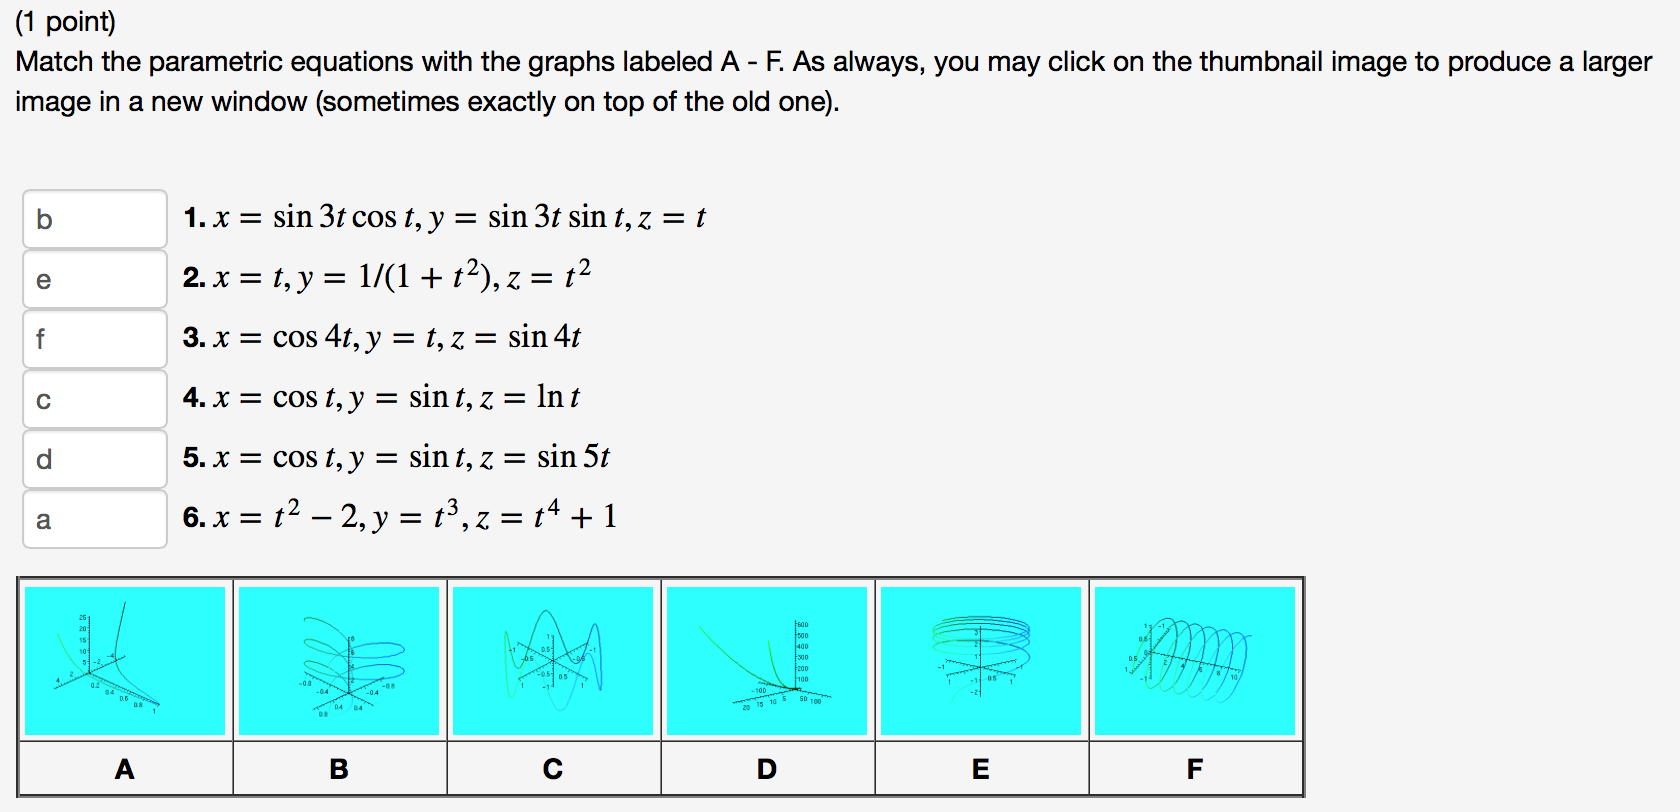 13b2504d5b6 match equations calc 3 Image for (1 point) Match the parametric equations  with the graphs labeled A -